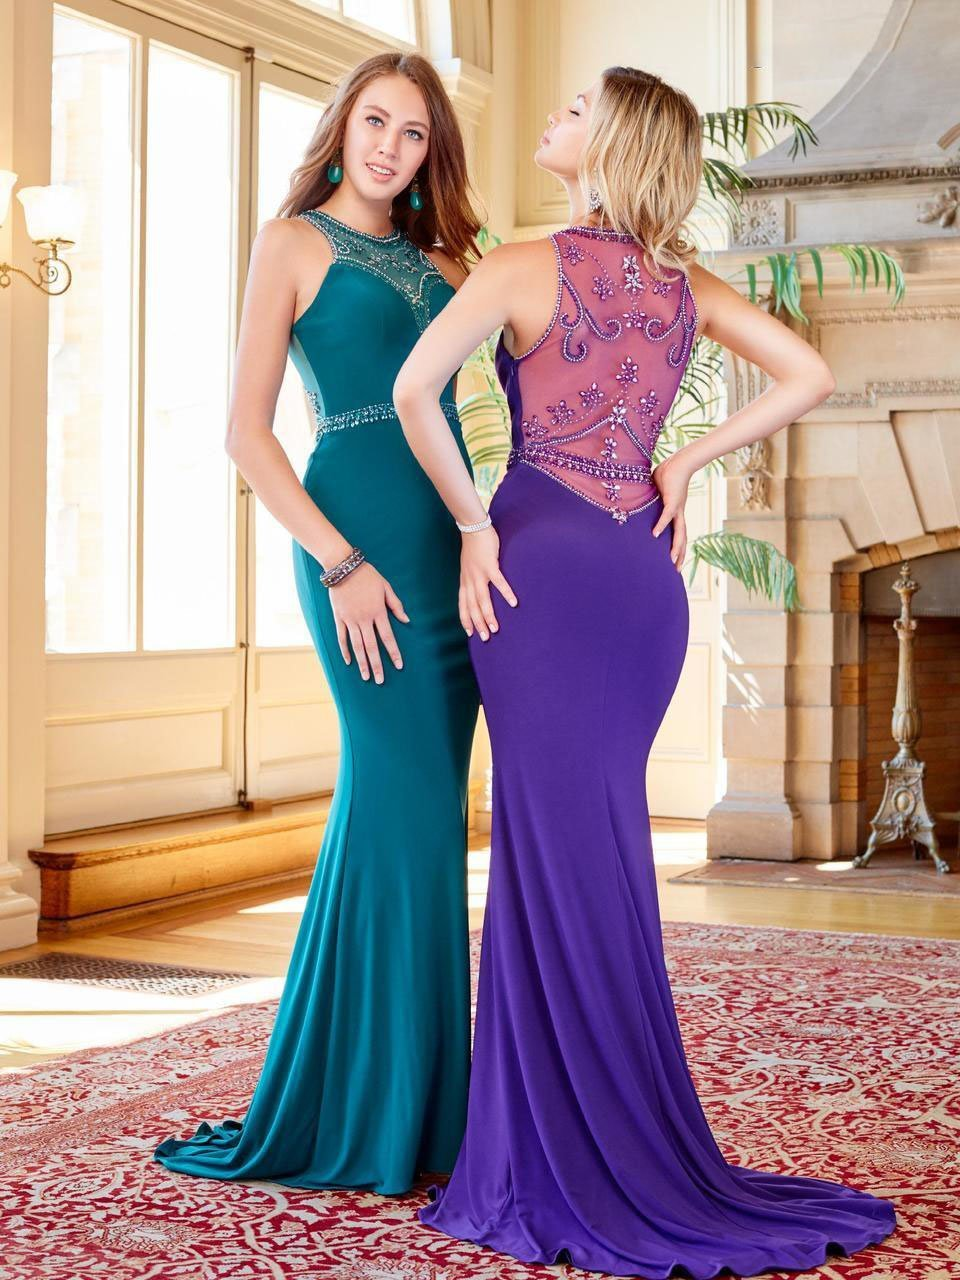 Clarisse - 3511 Bejeweled High Illusion Halter Gown in Green and Purple